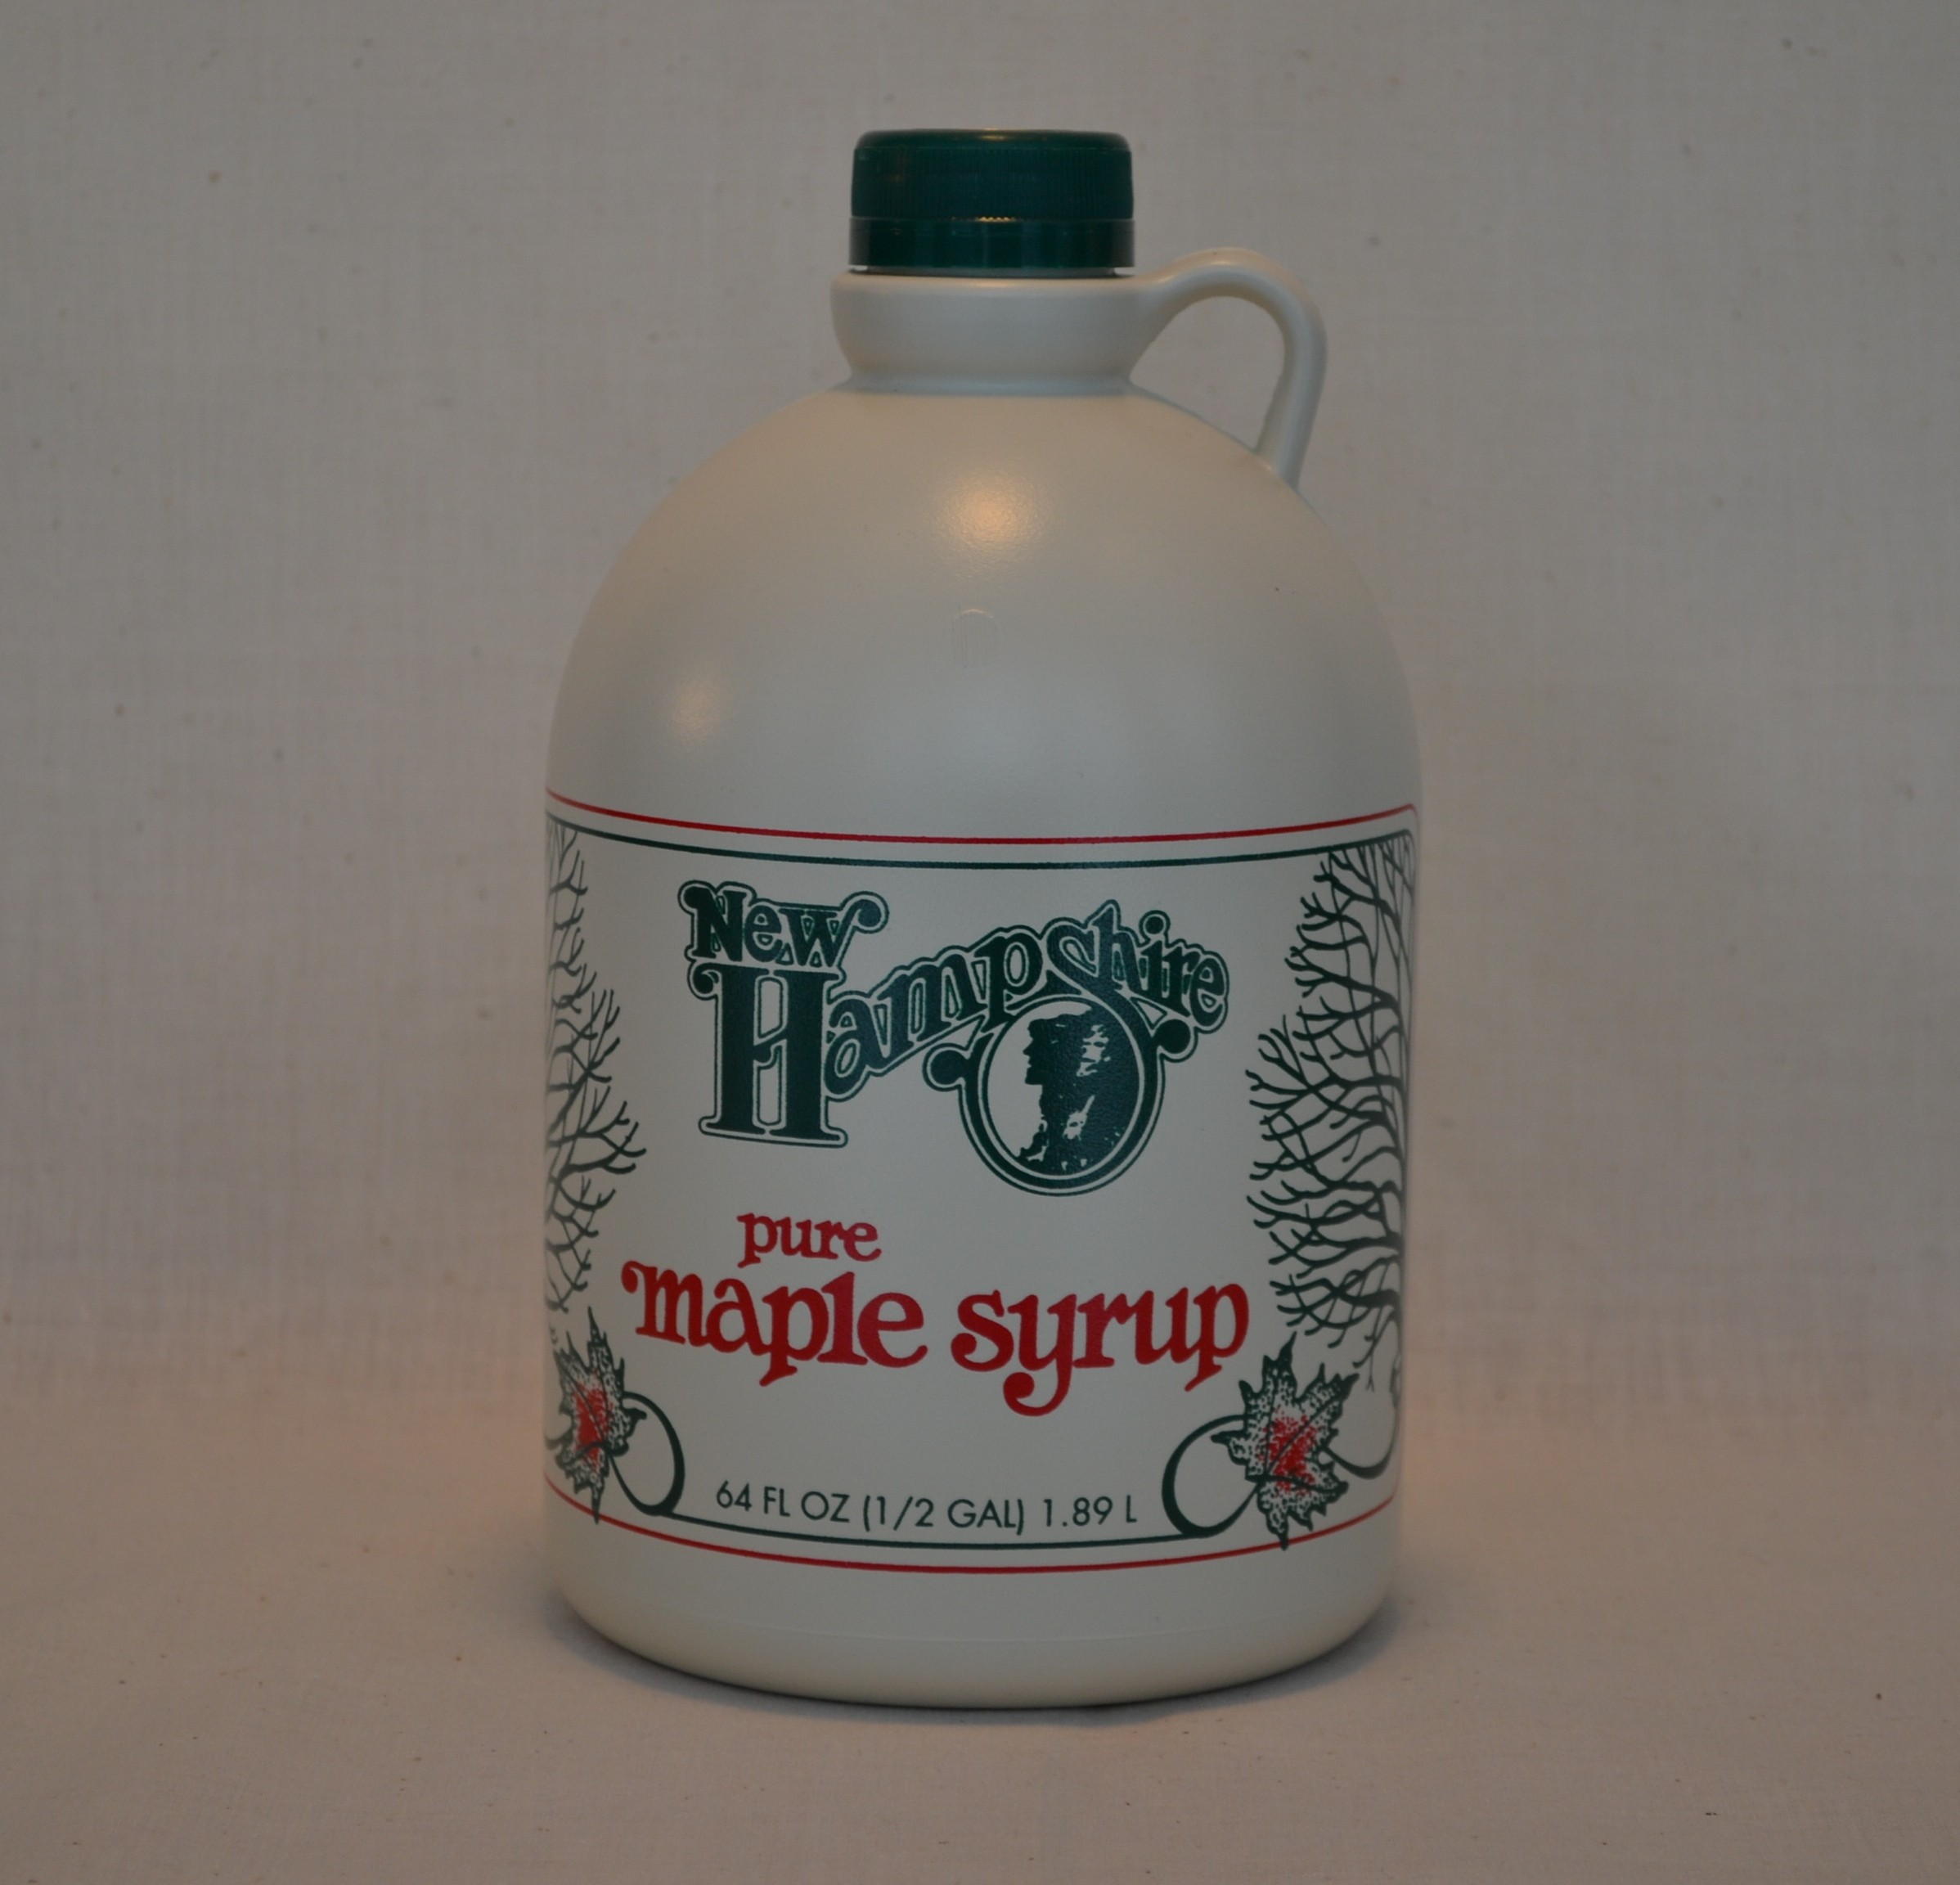 Half gallon jug